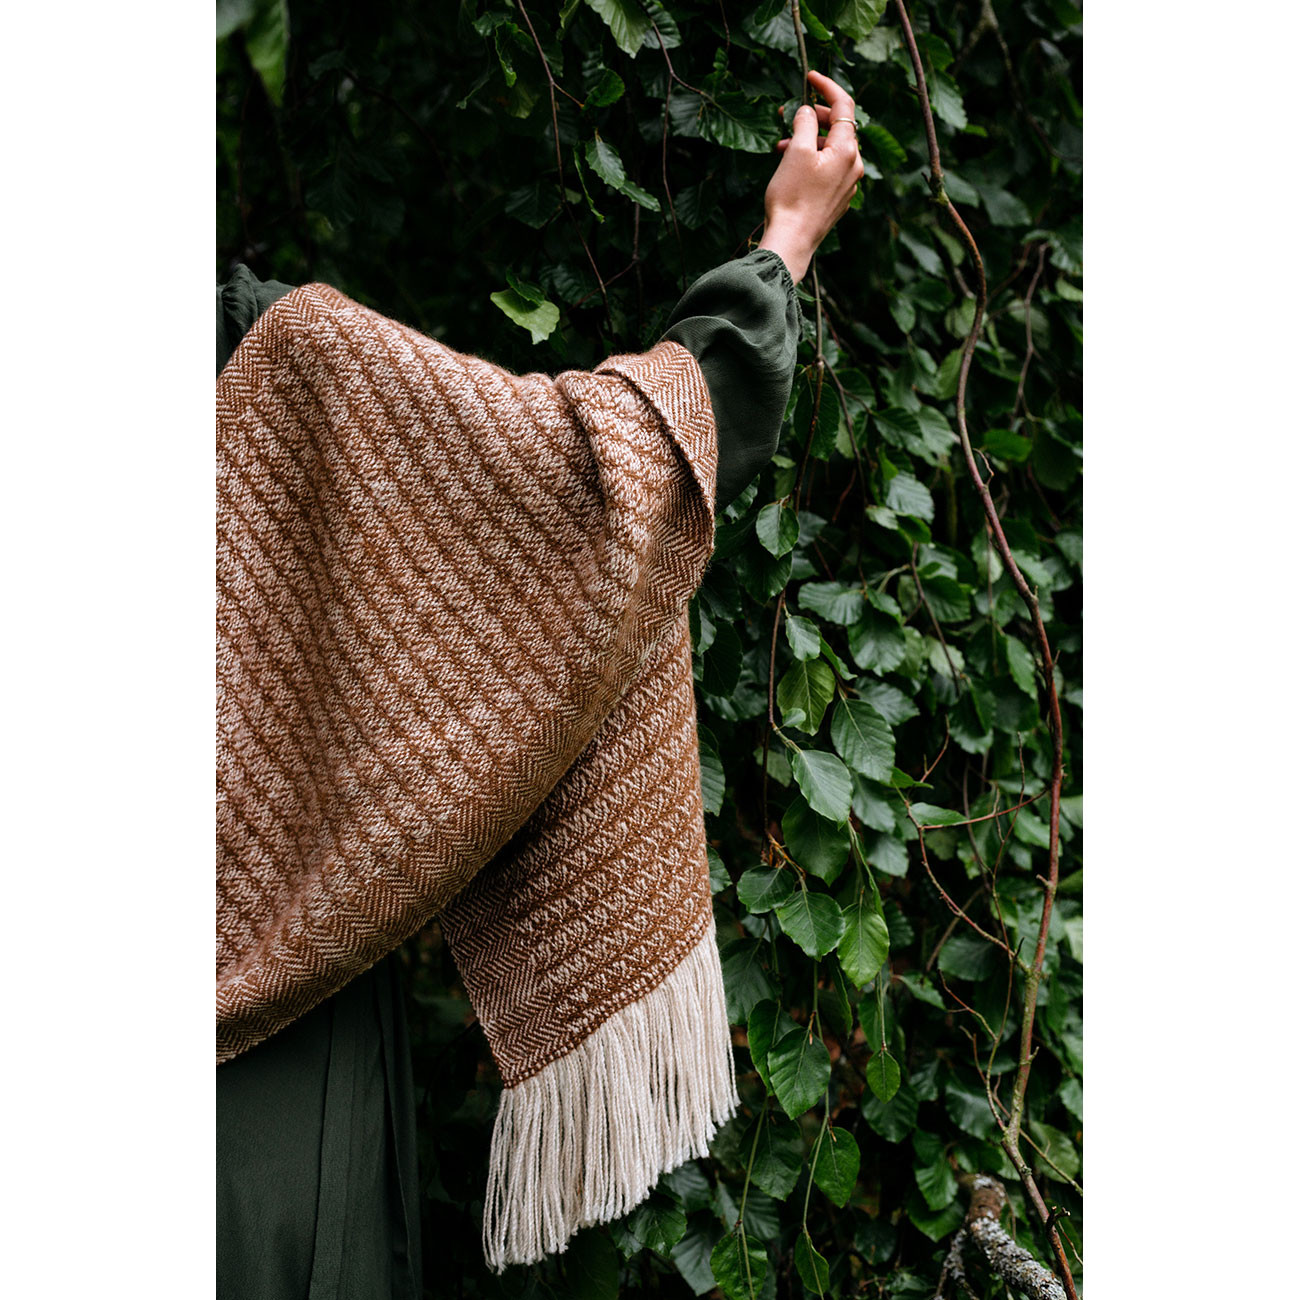 Handwoven Sycamore Wide Scarf - Natural Caramel and Cream Alpaca - 1